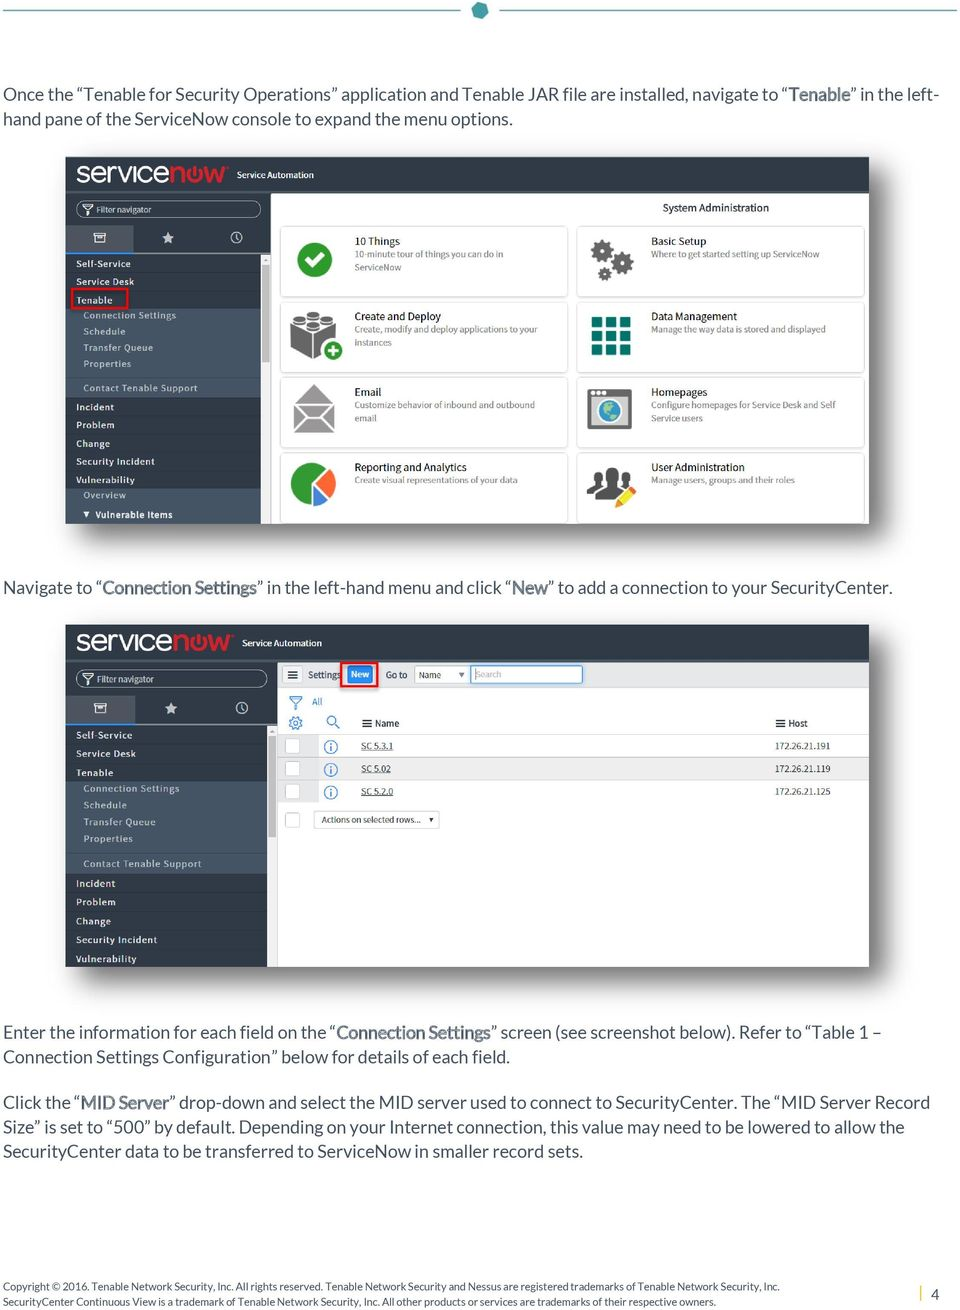 Tenable for ServiceNow - PDF